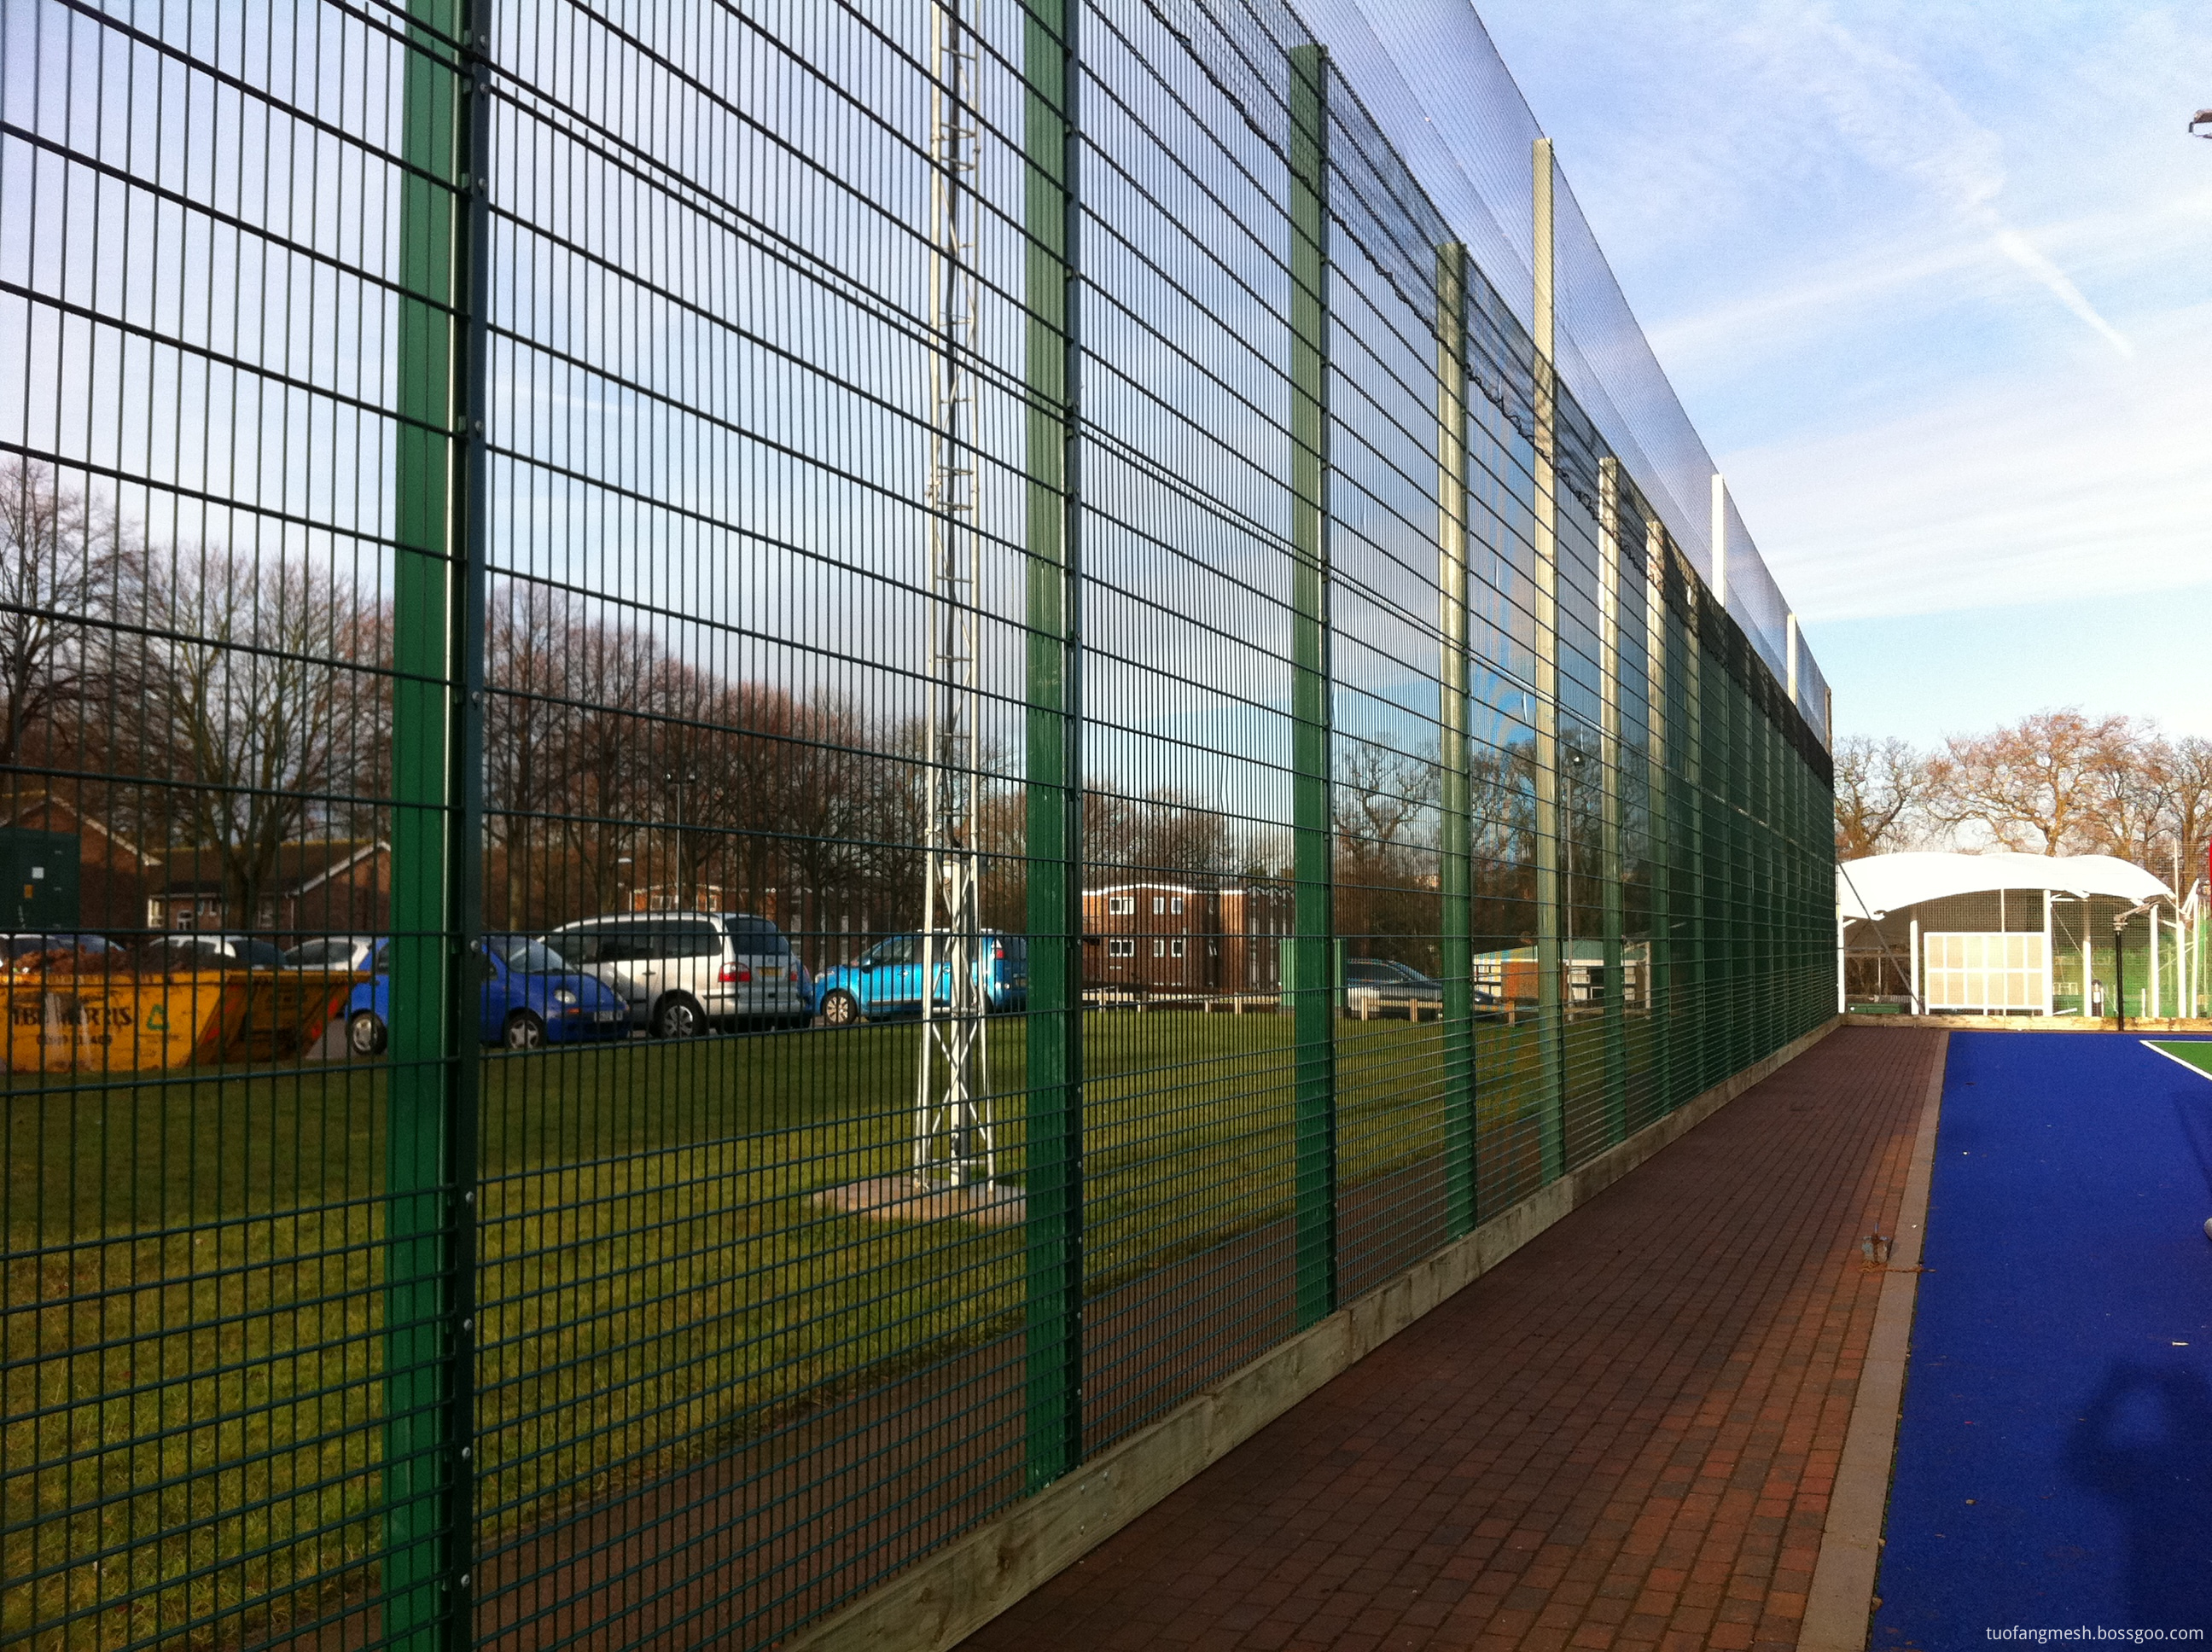 Green Welded High Security Fencing Panels Id 10704098